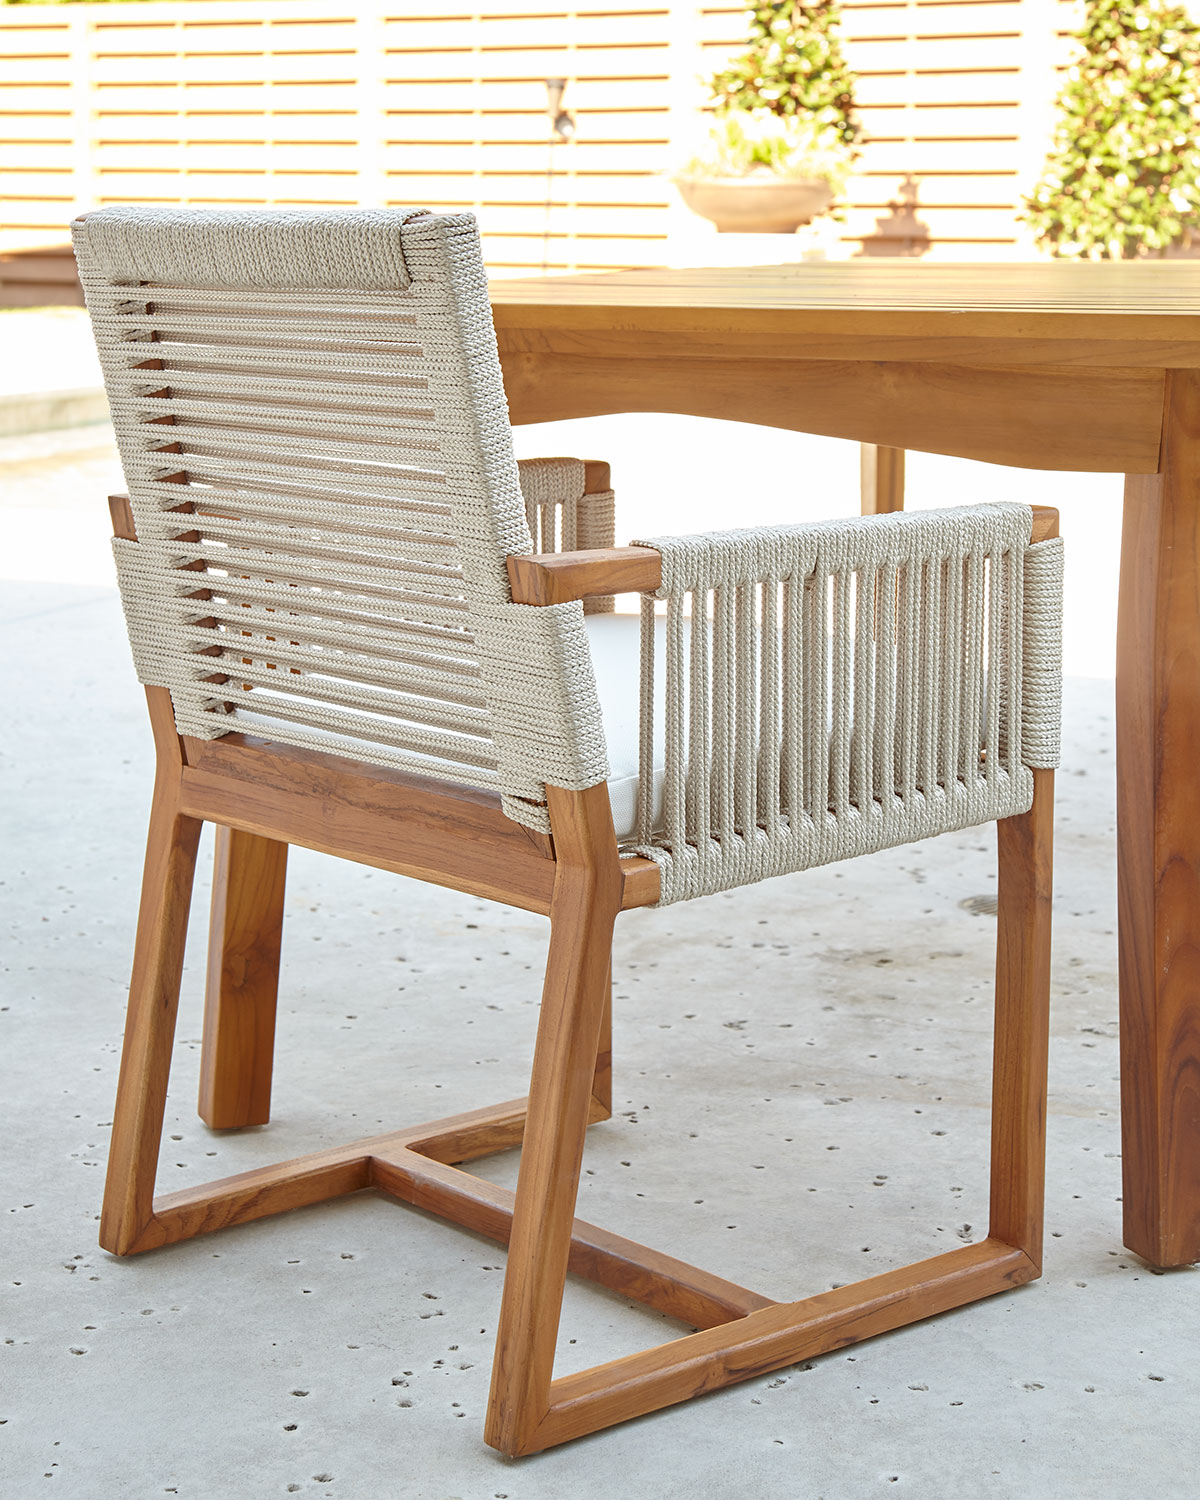 Buy Palecek Outdoor Furniture For Home Best Home Palecek Outdoor